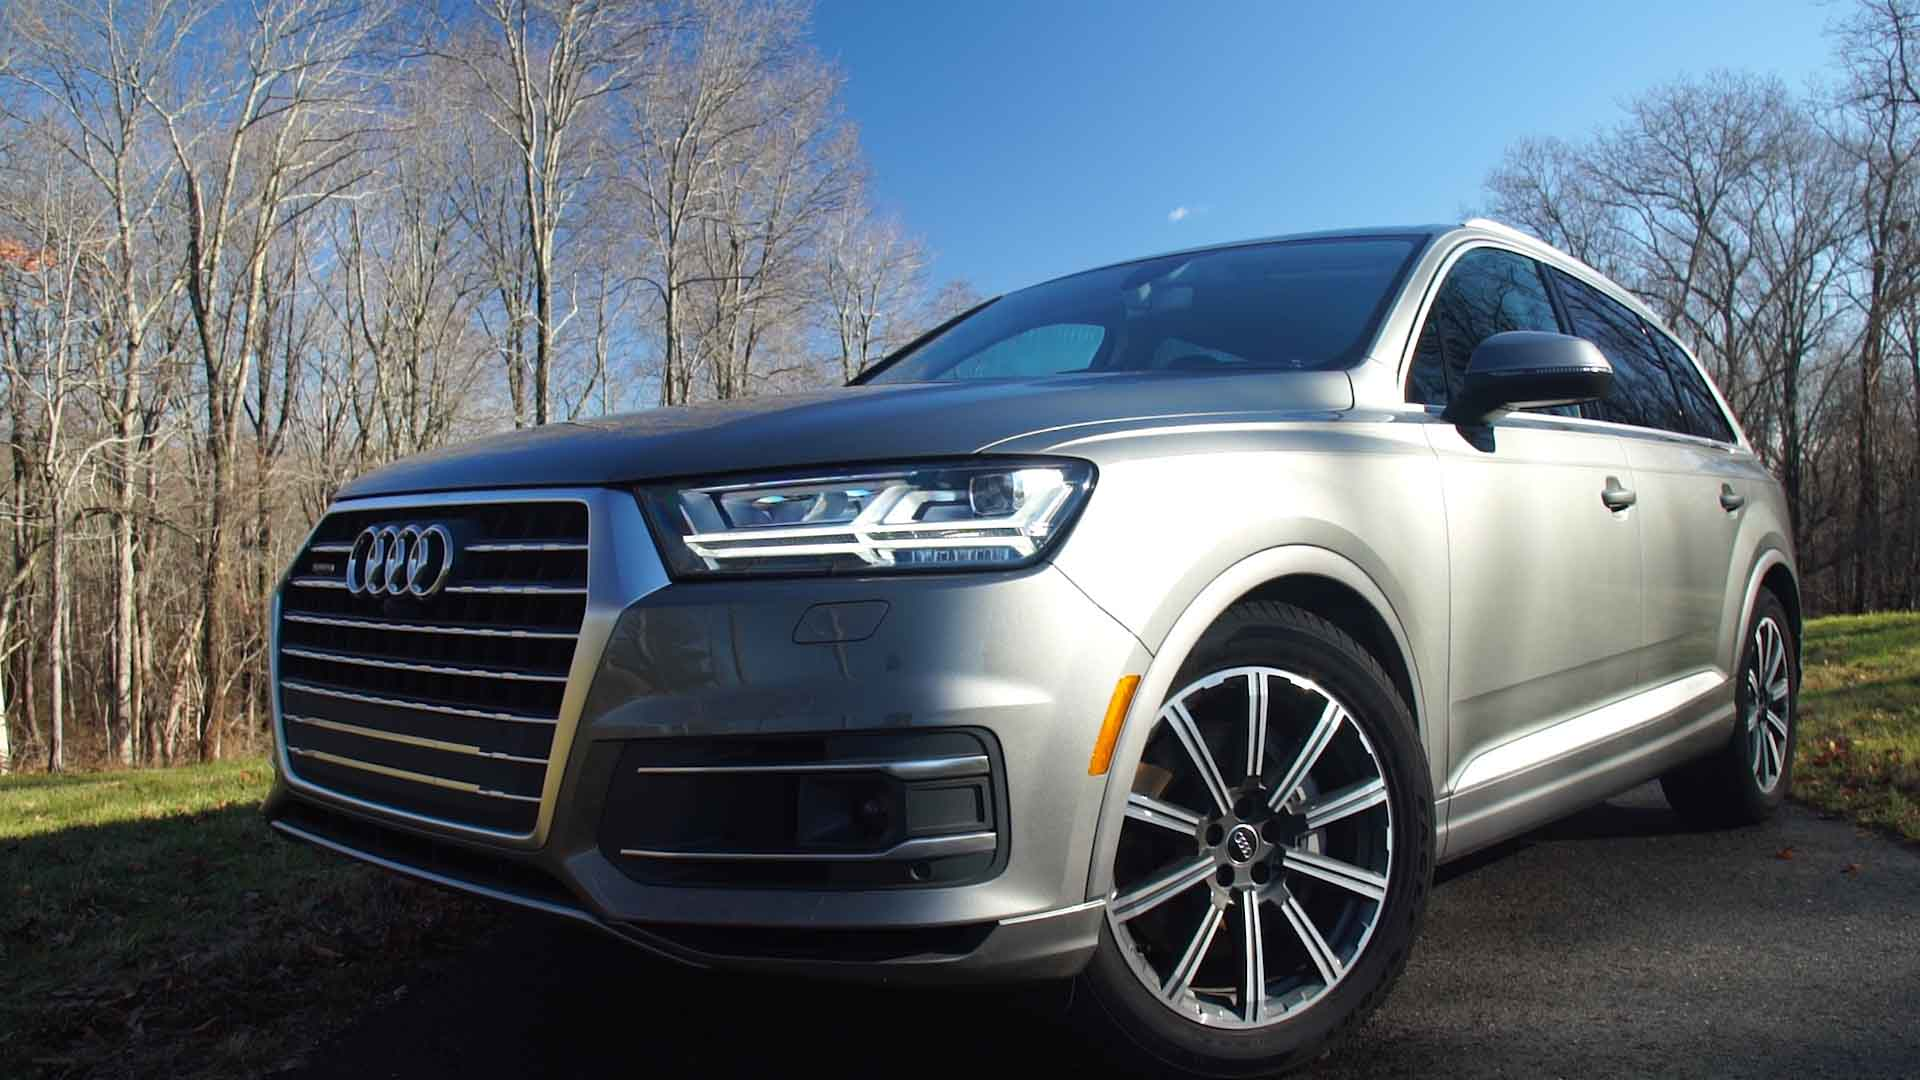 2018 Audi Q7 Reviews Ratings Prices Consumer Reports